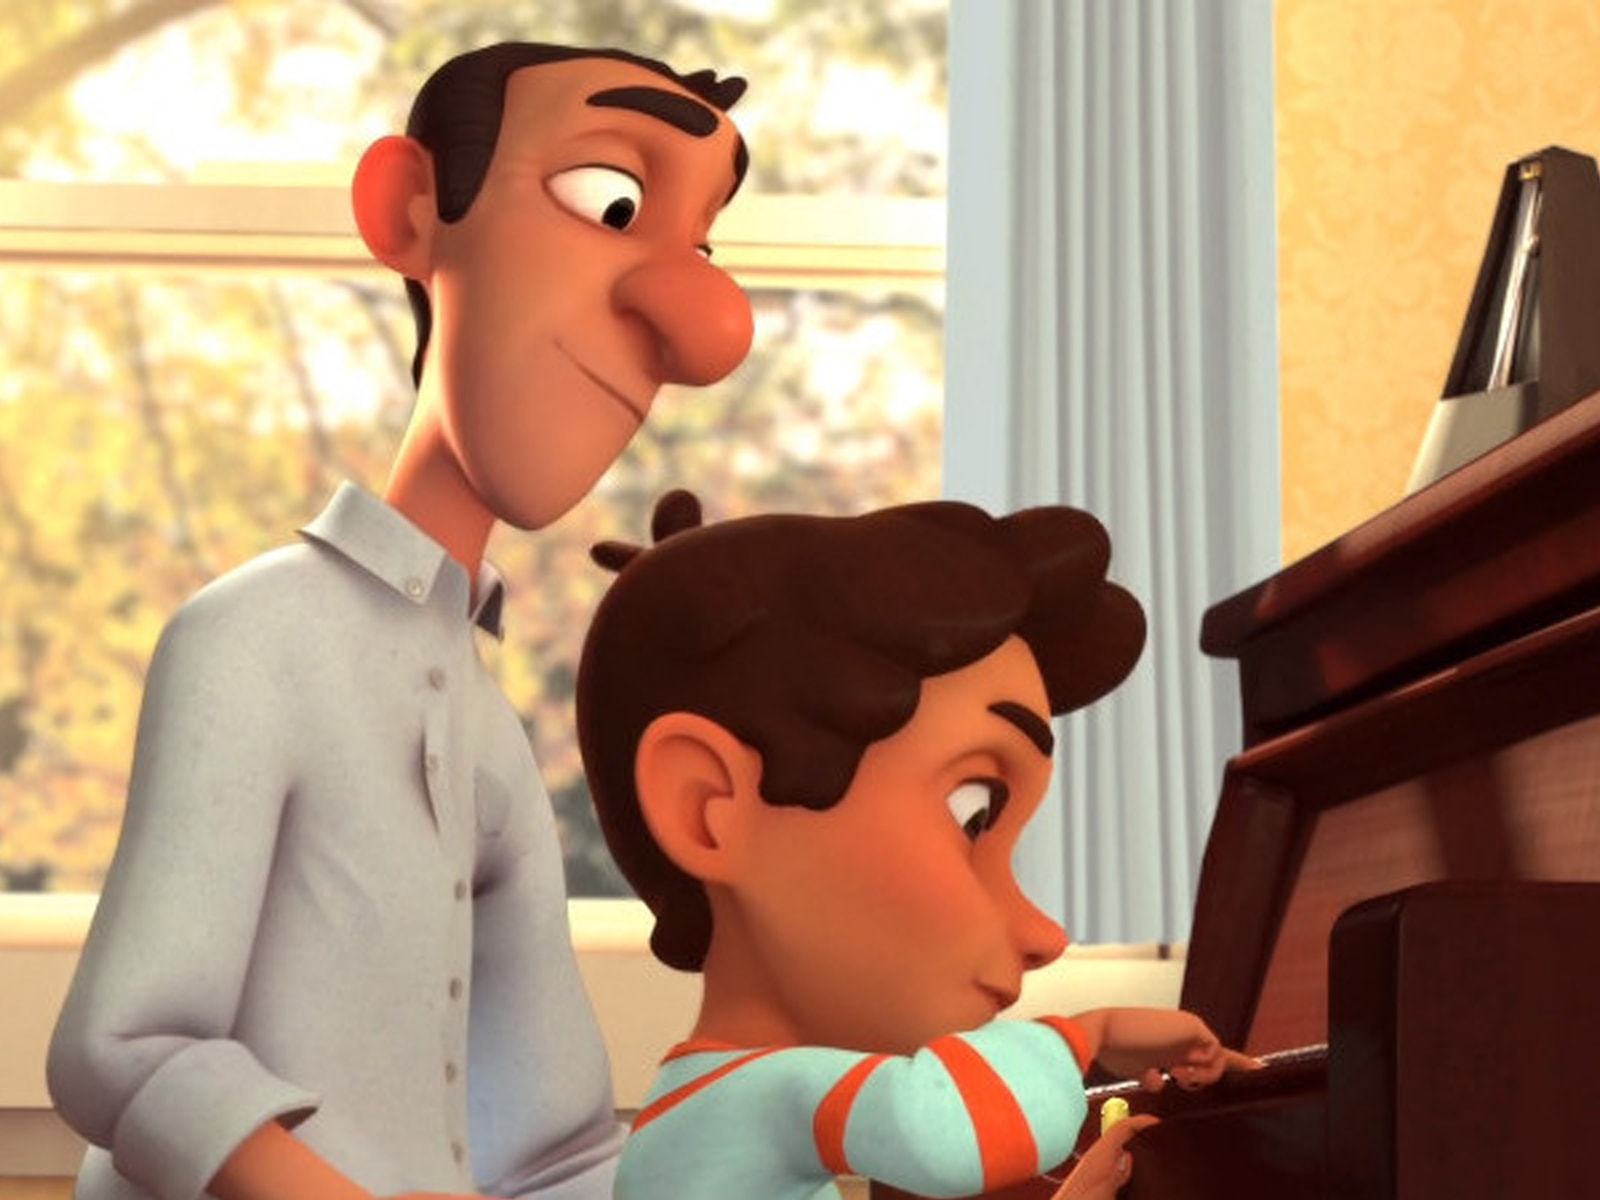 In a scene from DigiPen Europe-Bilbao student animation Arpeggio, a father watches his young son play the piano